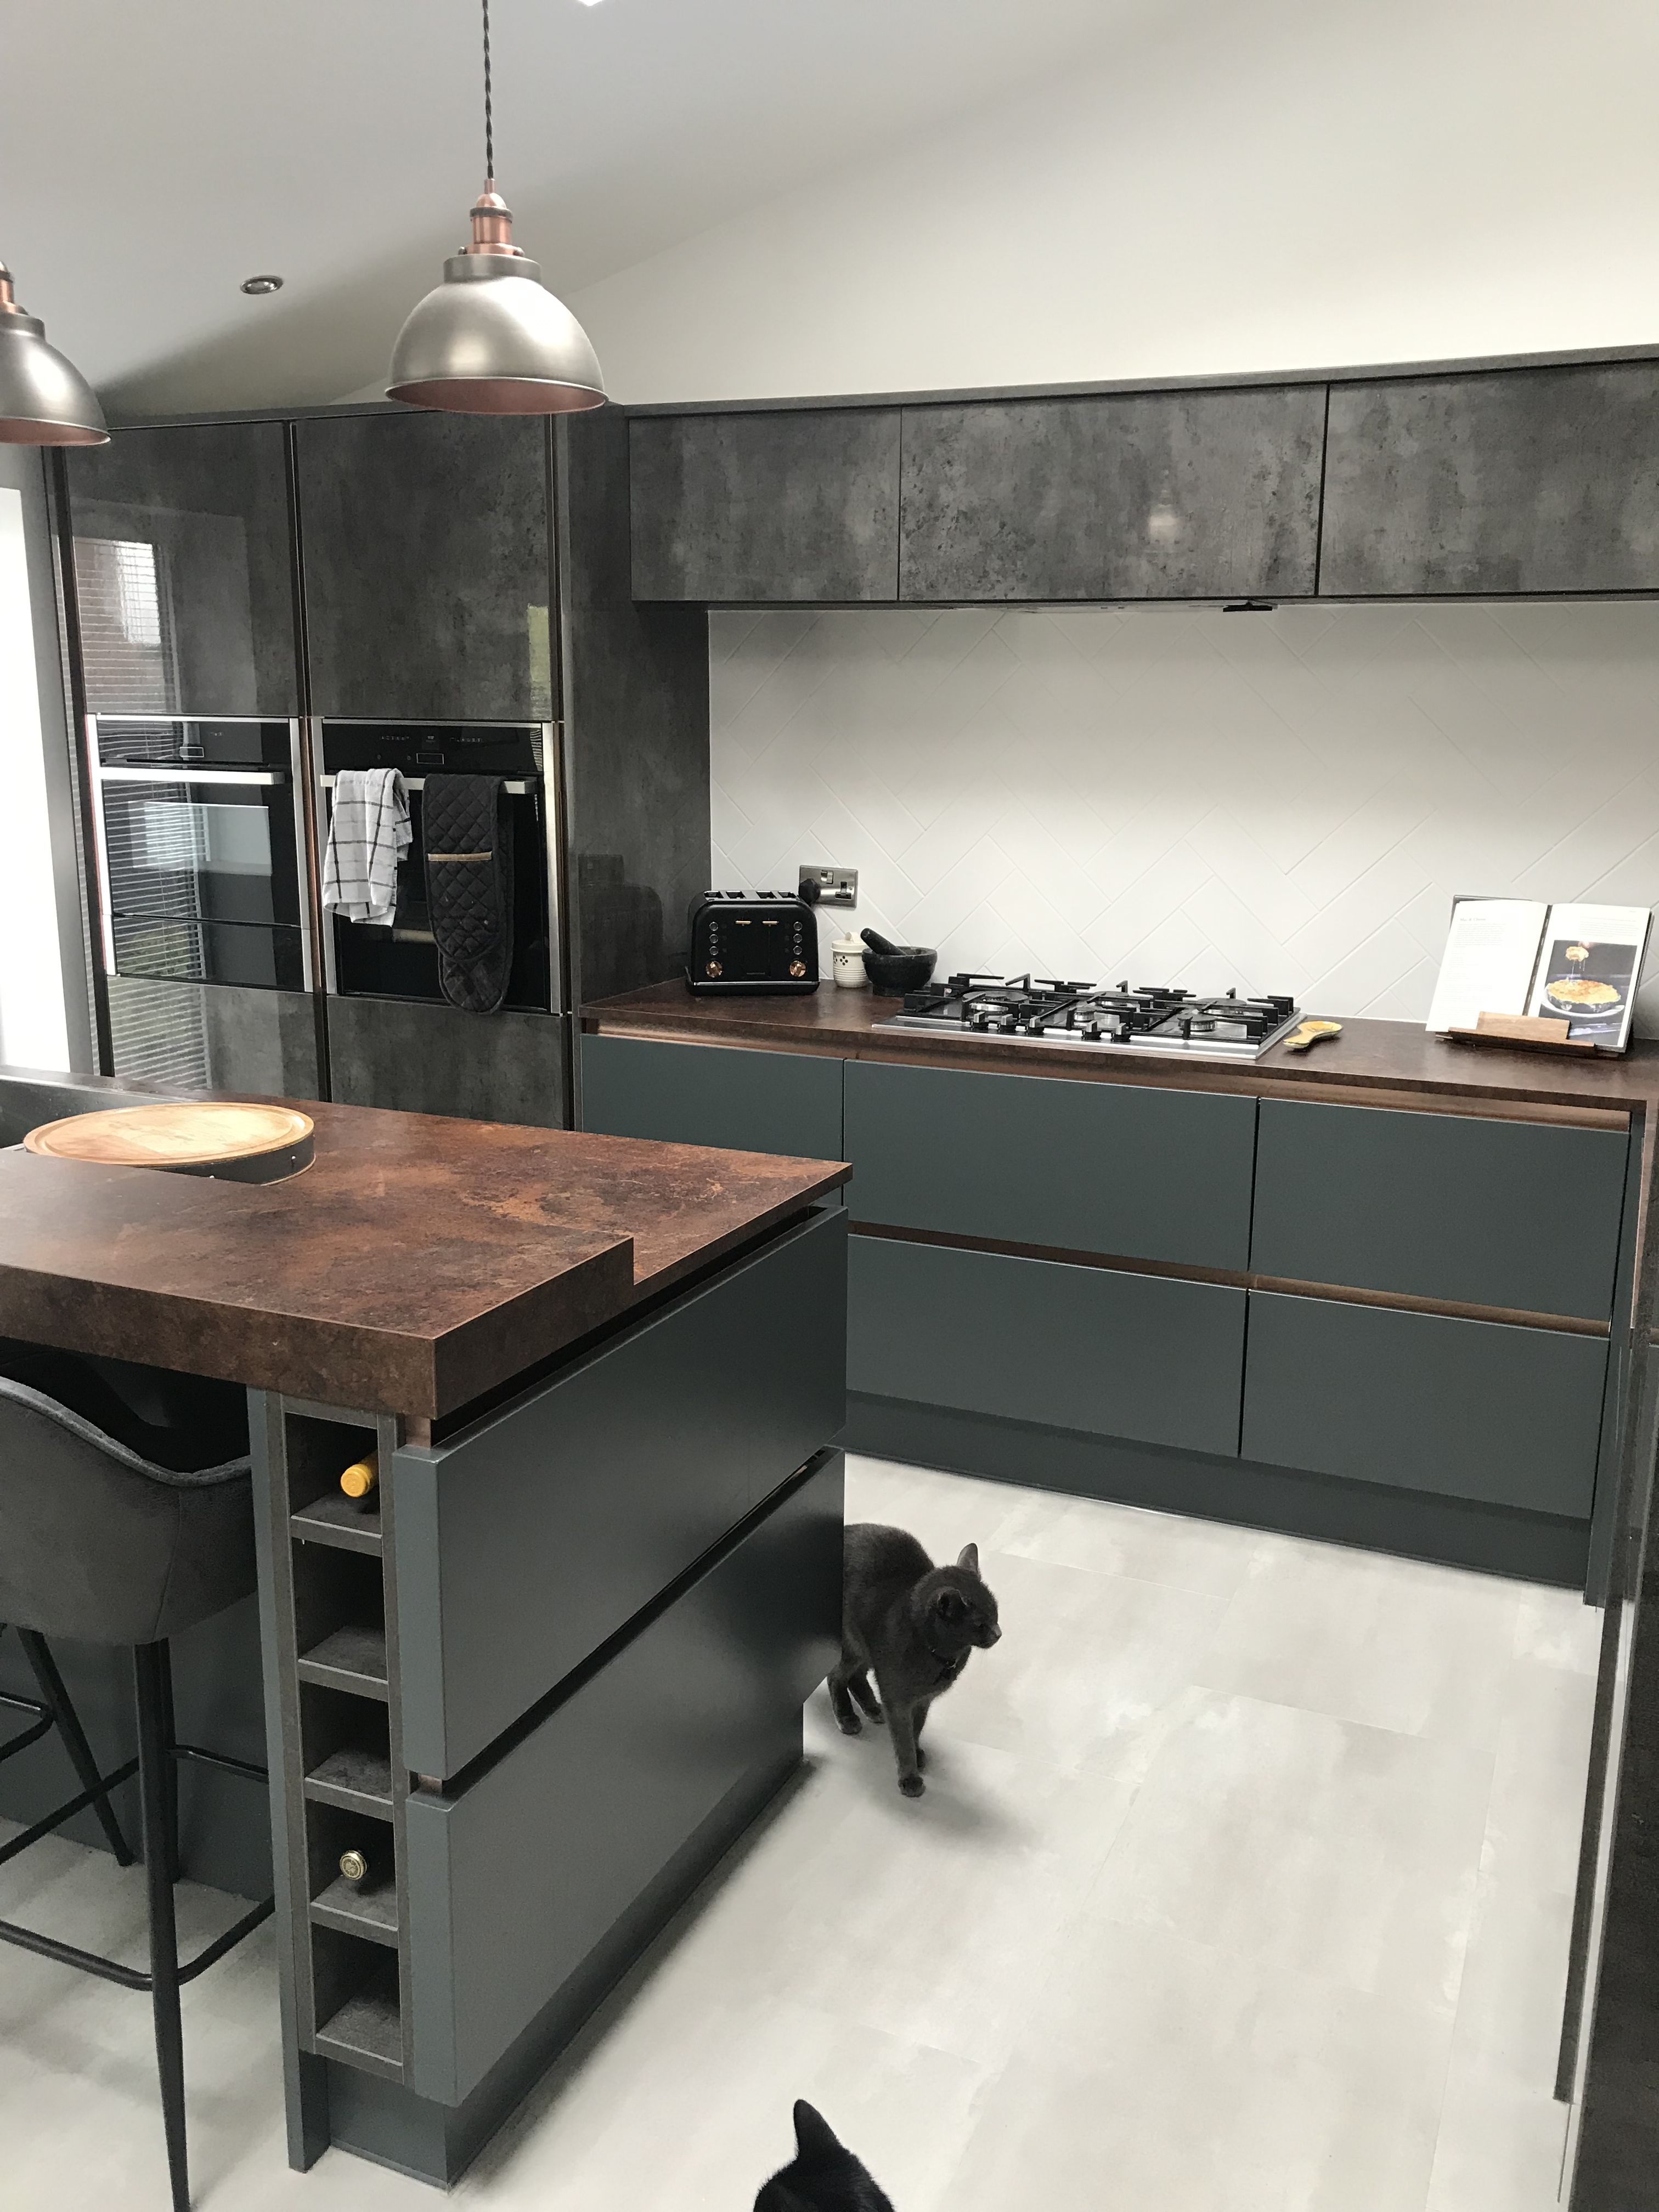 Our new wren kitchen. (With images) Modern grey kitchen